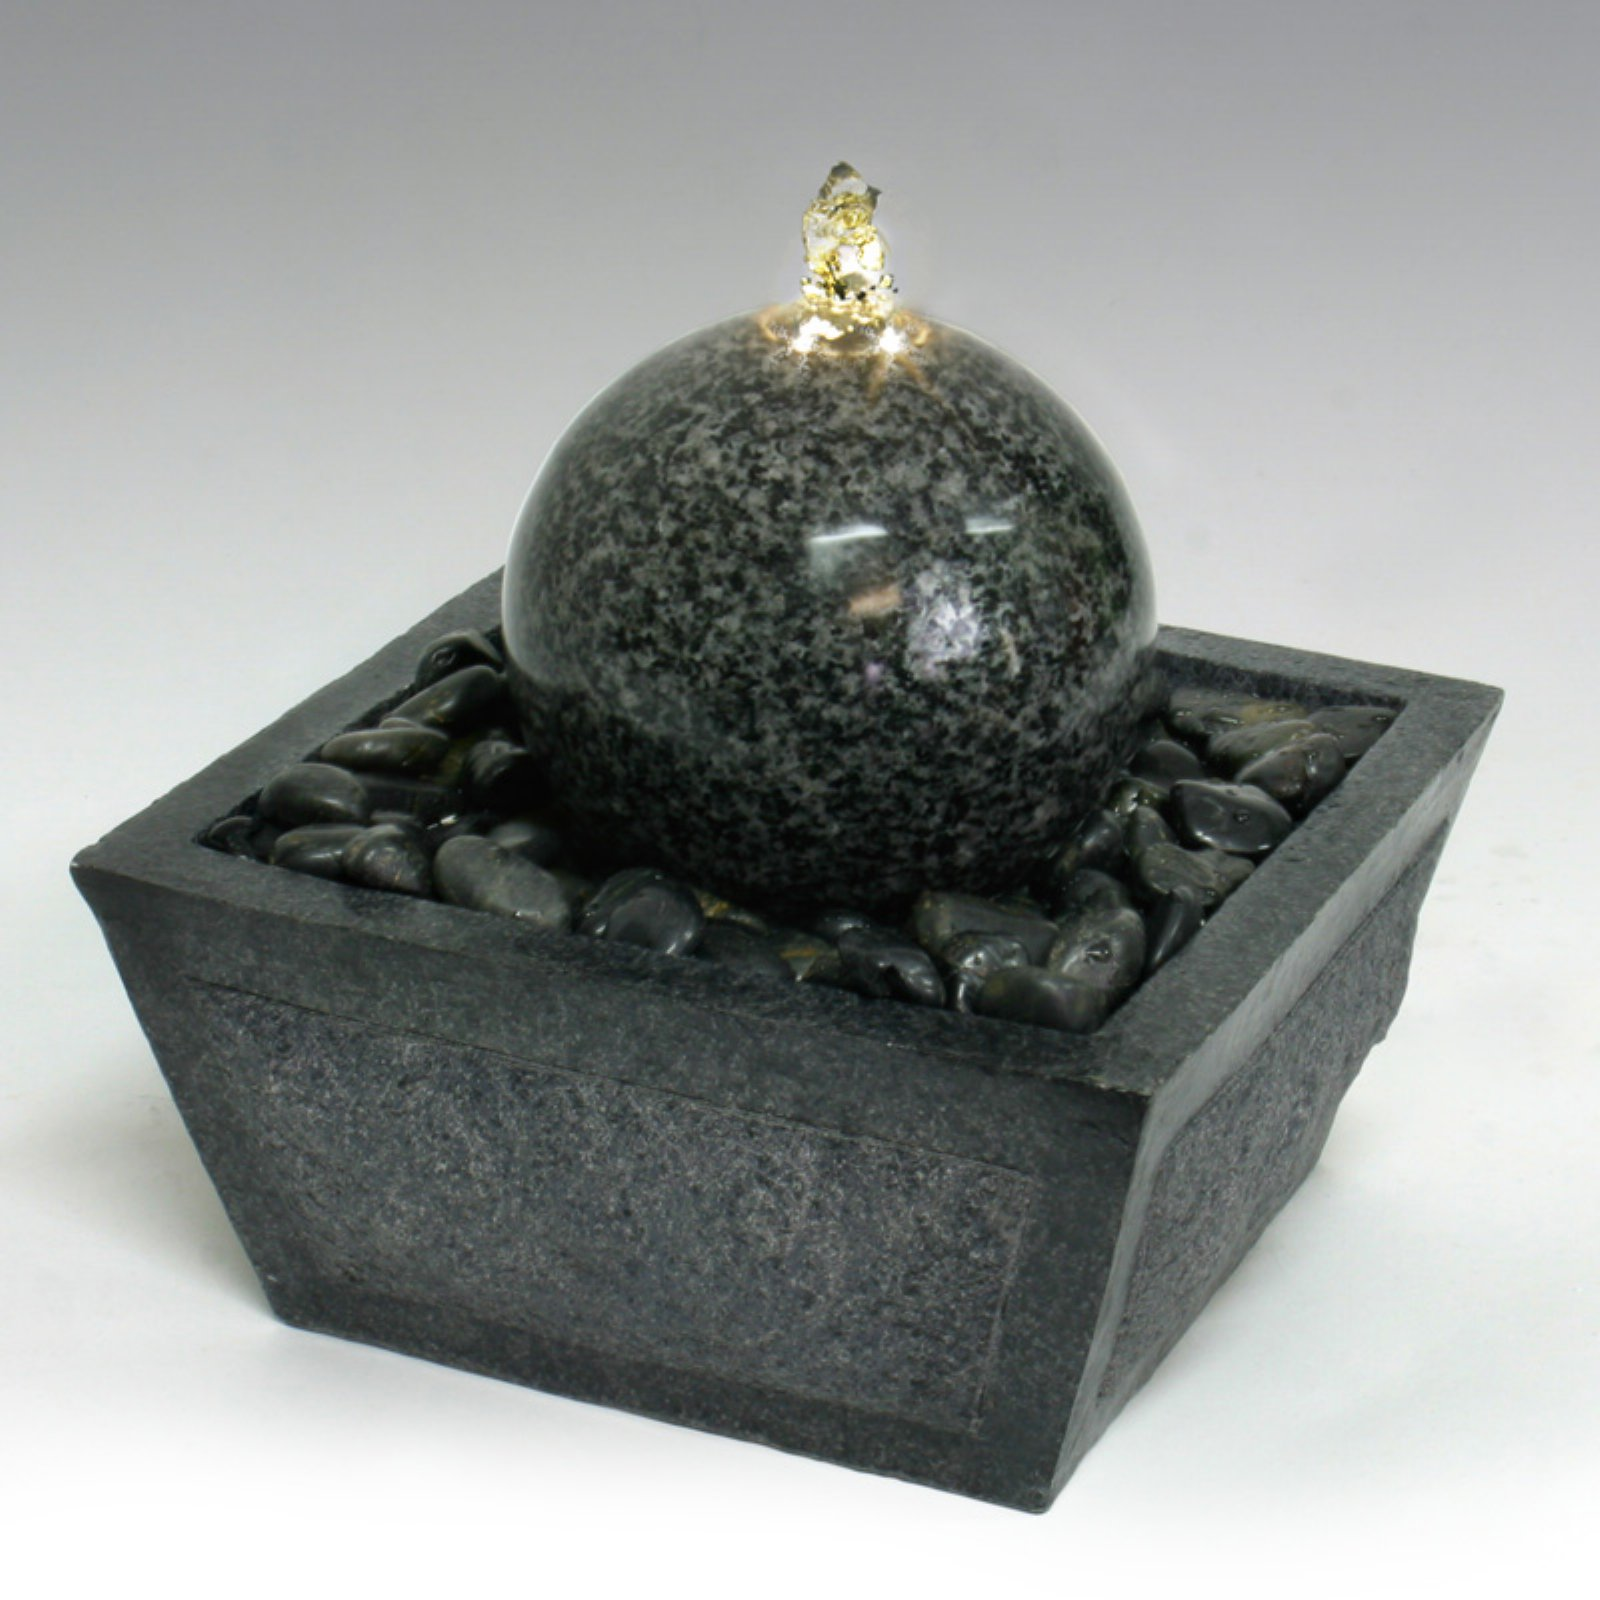 Algreen Illuminated Relaxation Outdoor Fountain with Granite Ball and Natural Stones - Gray